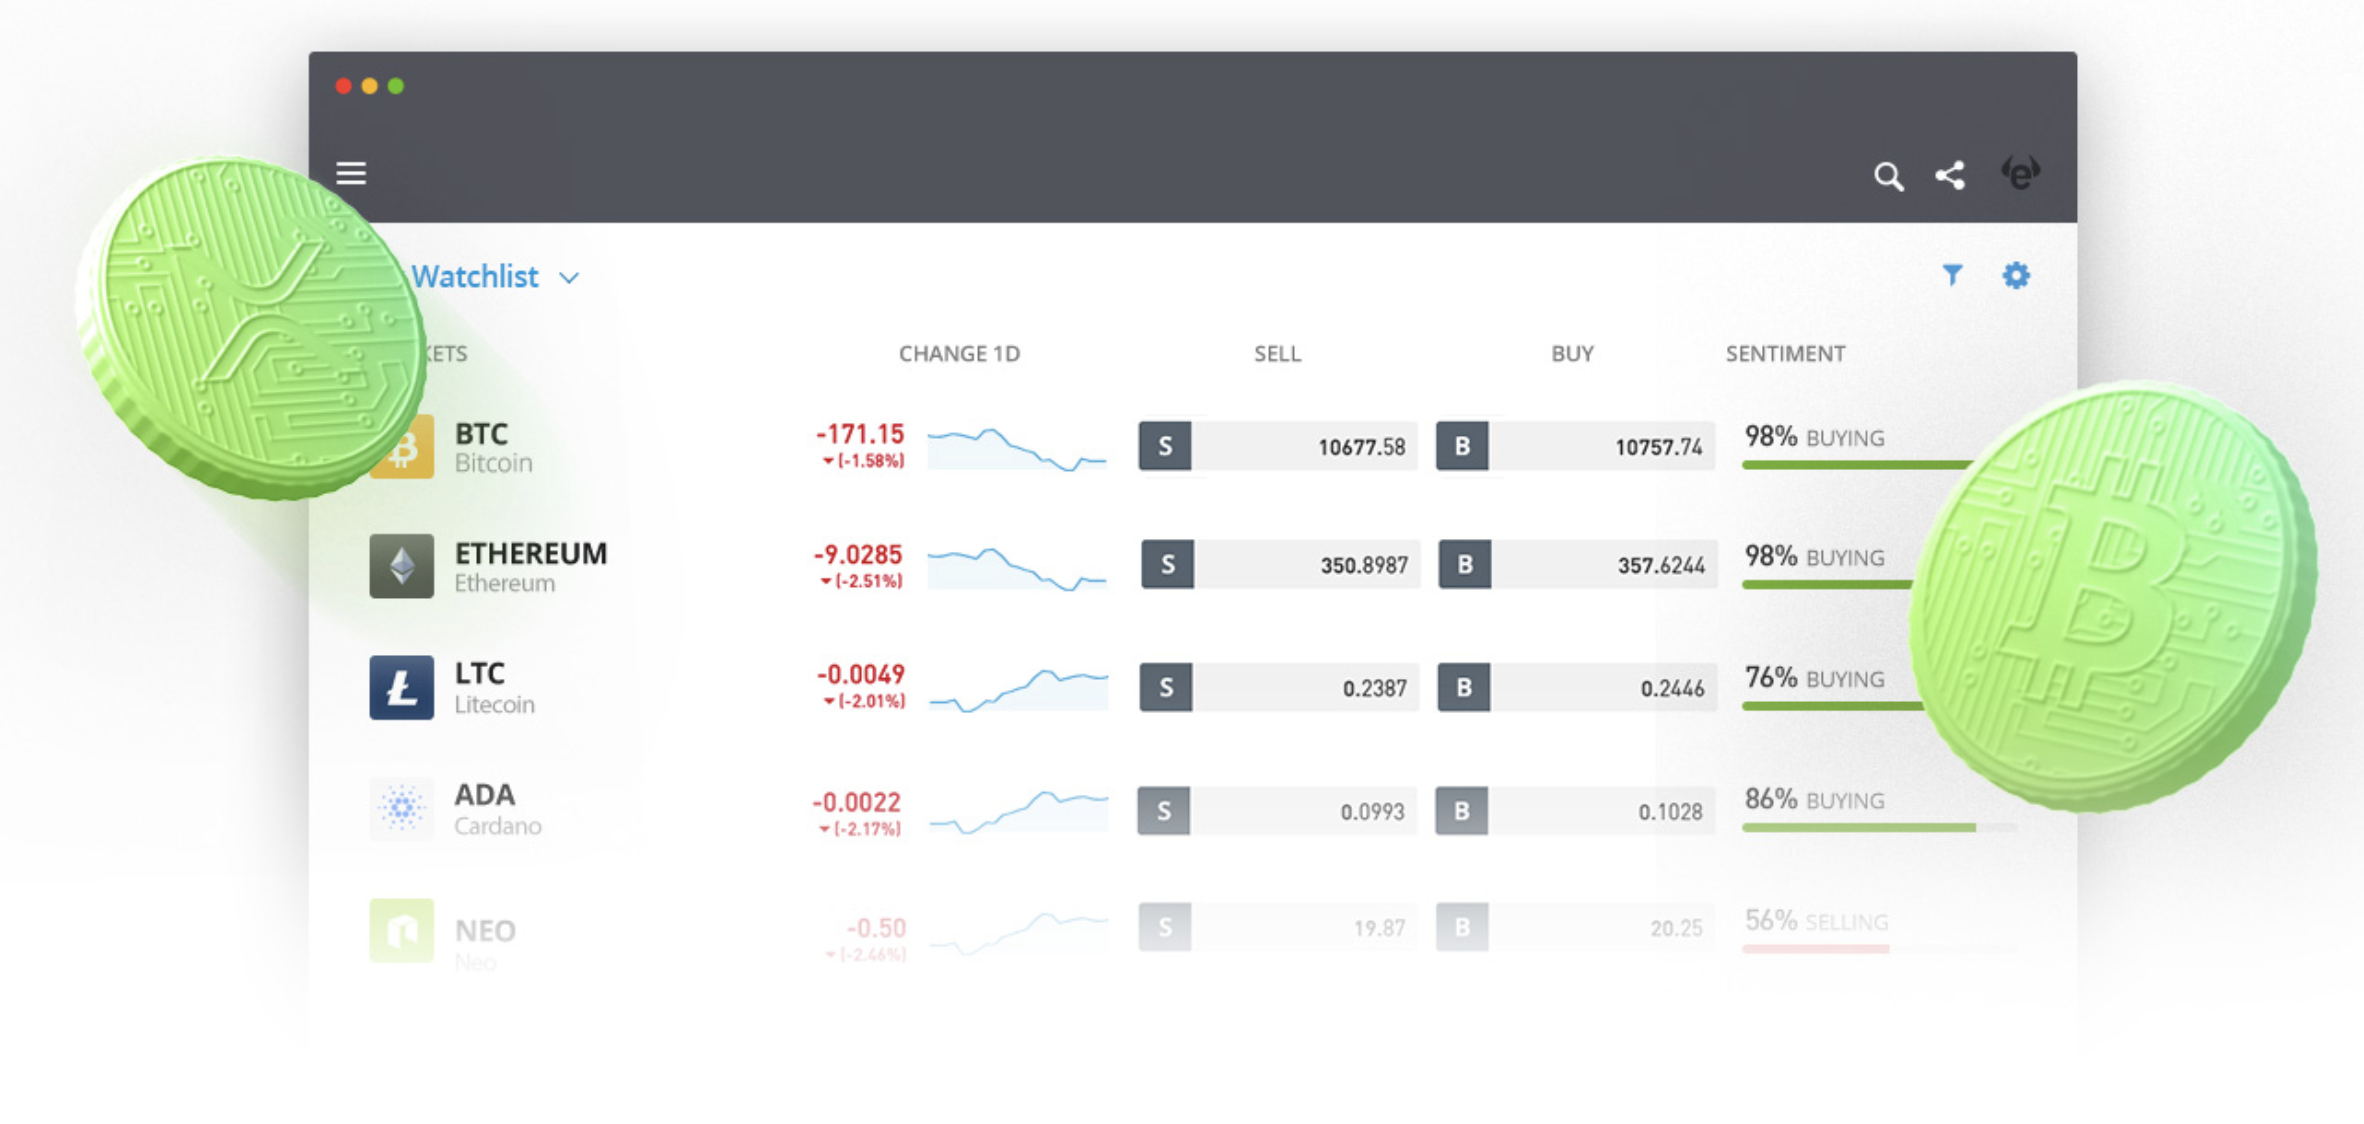 An image from eToro.com showing the cryptocurrency trading interface on the web version.